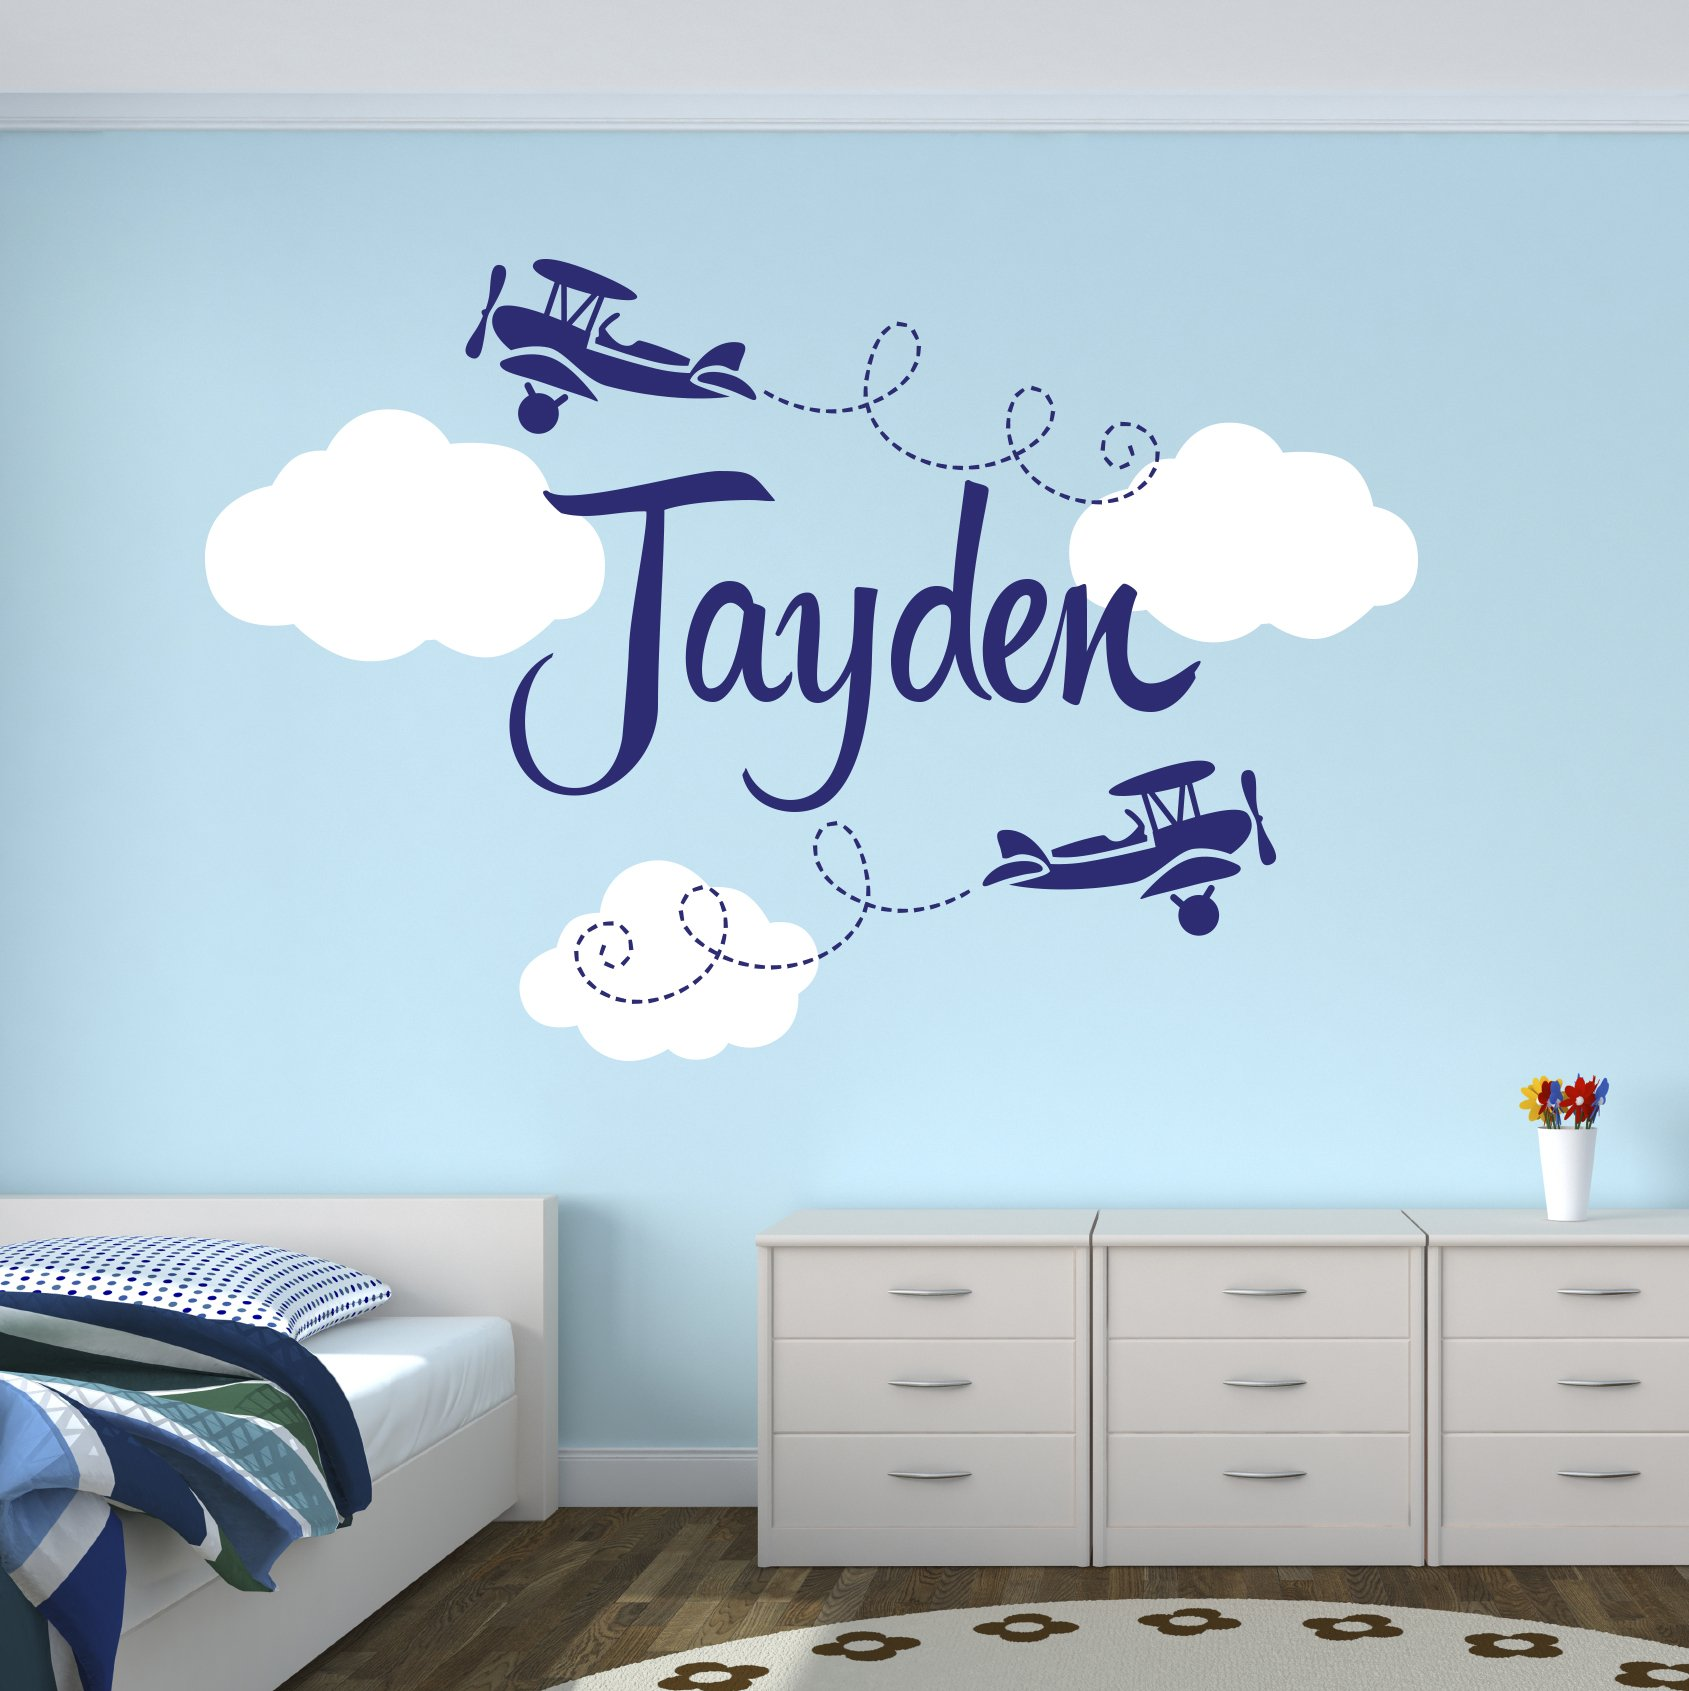 Custom Airplane Name Wall Decal - Boys Kids Room Decor - Nursery Wall Decals - Airplanes Wall Decors by Lovely Decals World